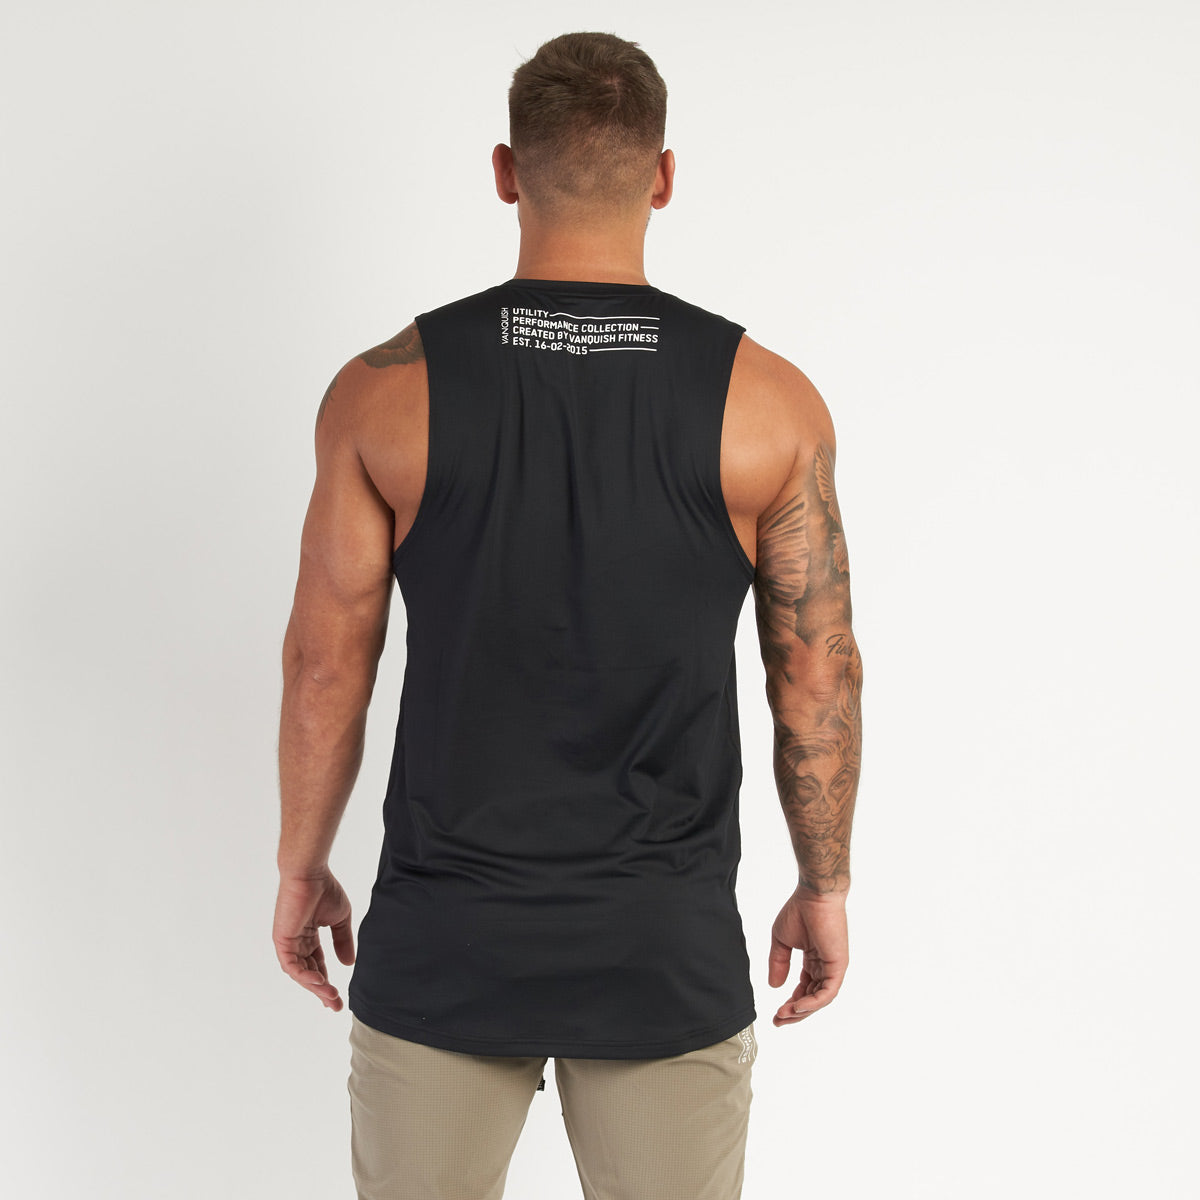 Vanquish Utility Men's Black Sleeveless T Shirt